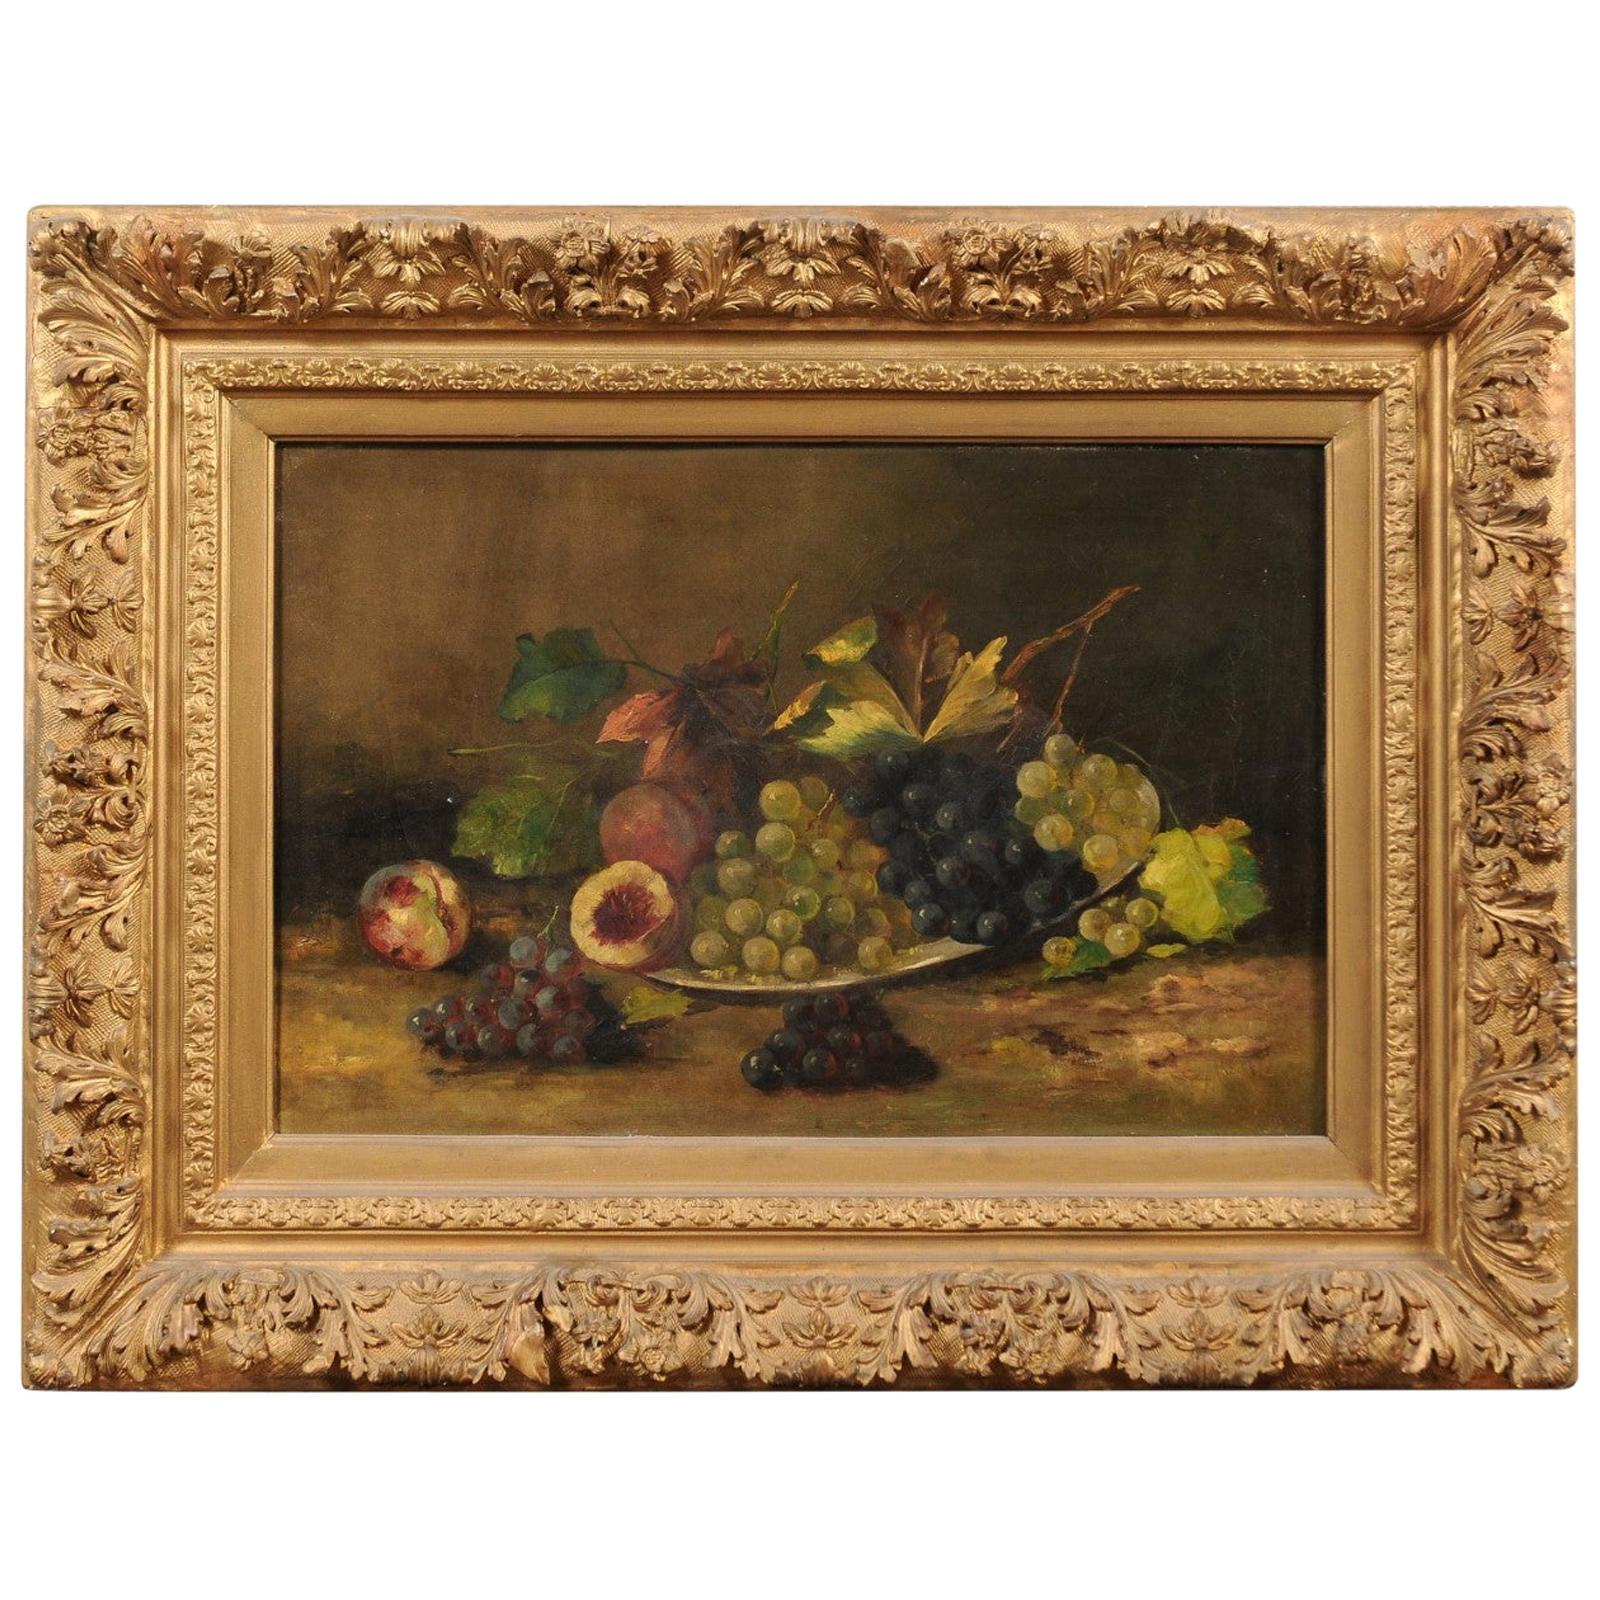 French Giltwood Framed 19th Century Oil on Canvas Painting Depicting Fruits